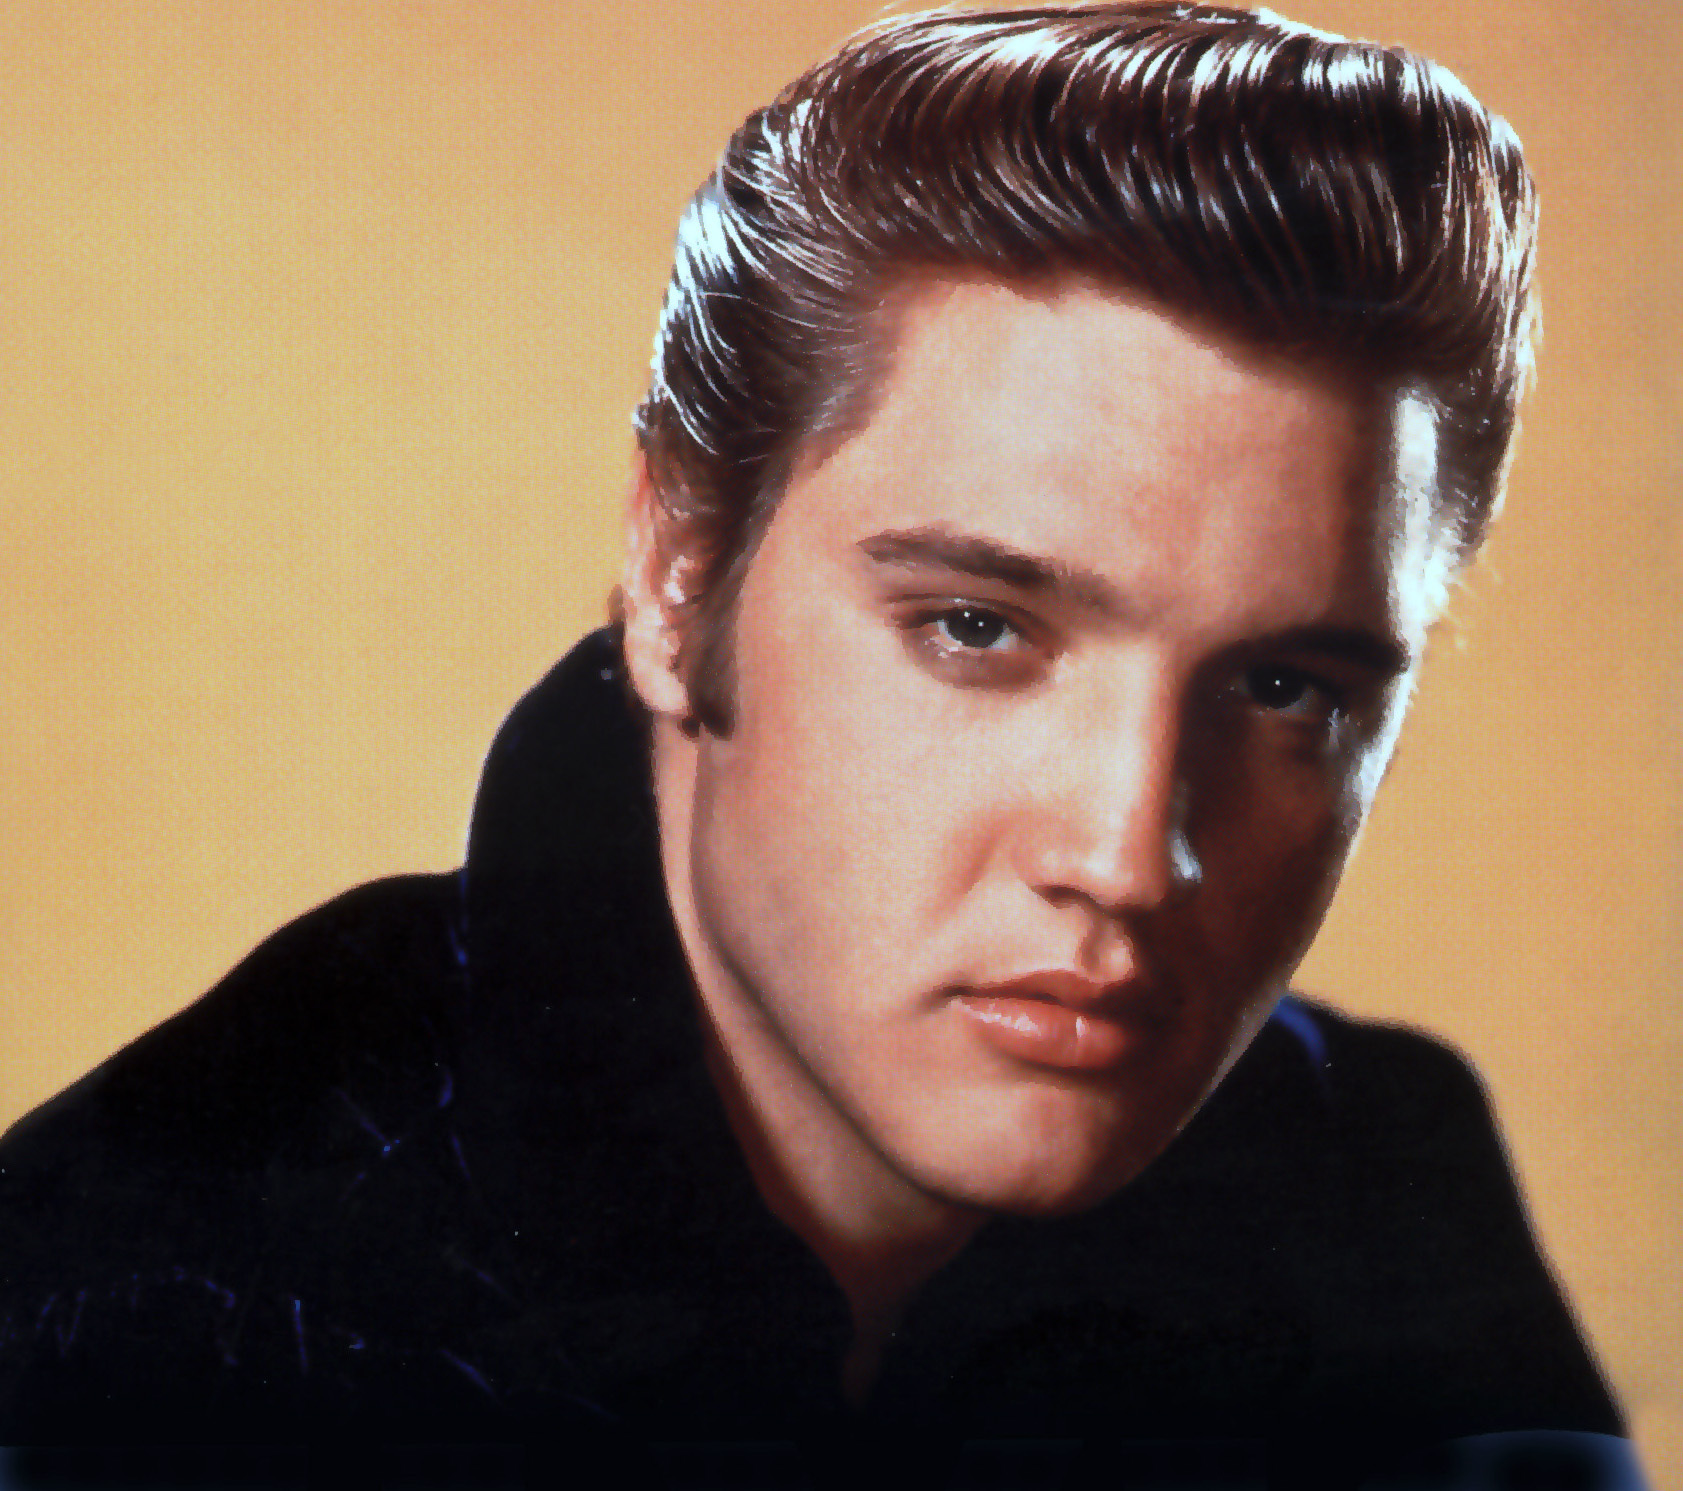 Elvis Presley - Elvis Presley Photo (22316521) - Fanpop